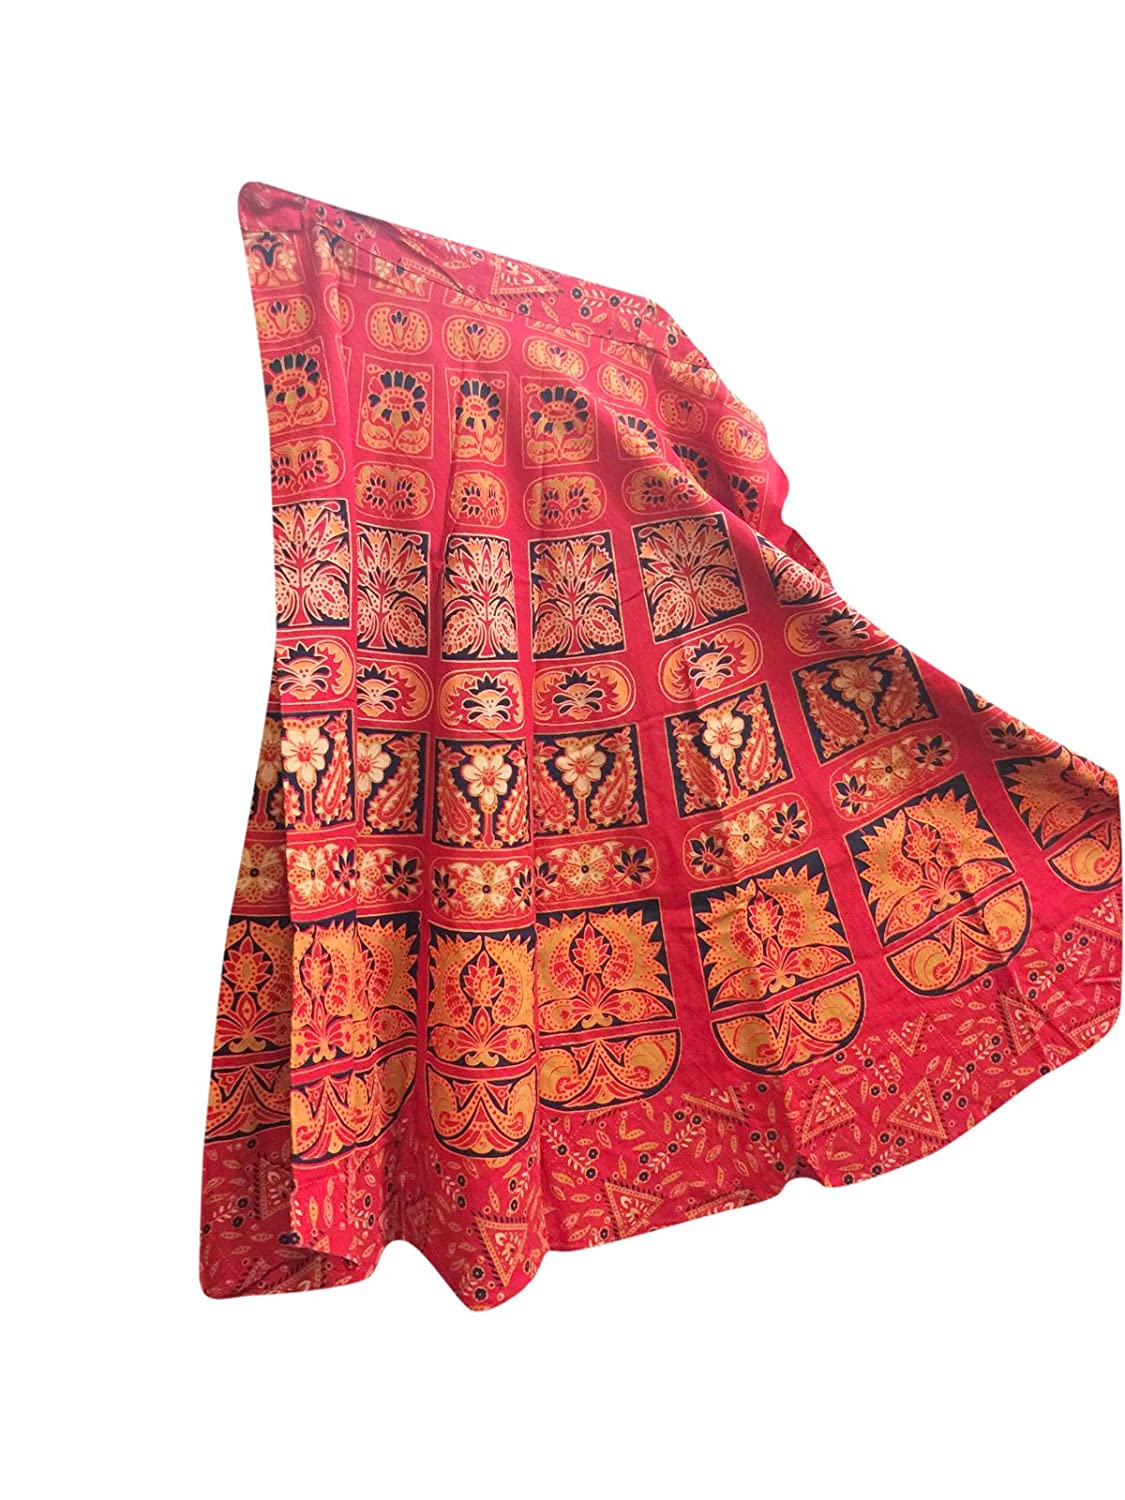 Mogul Interior Womens Wrap Around Skirt Red india Printed Cotton One Size